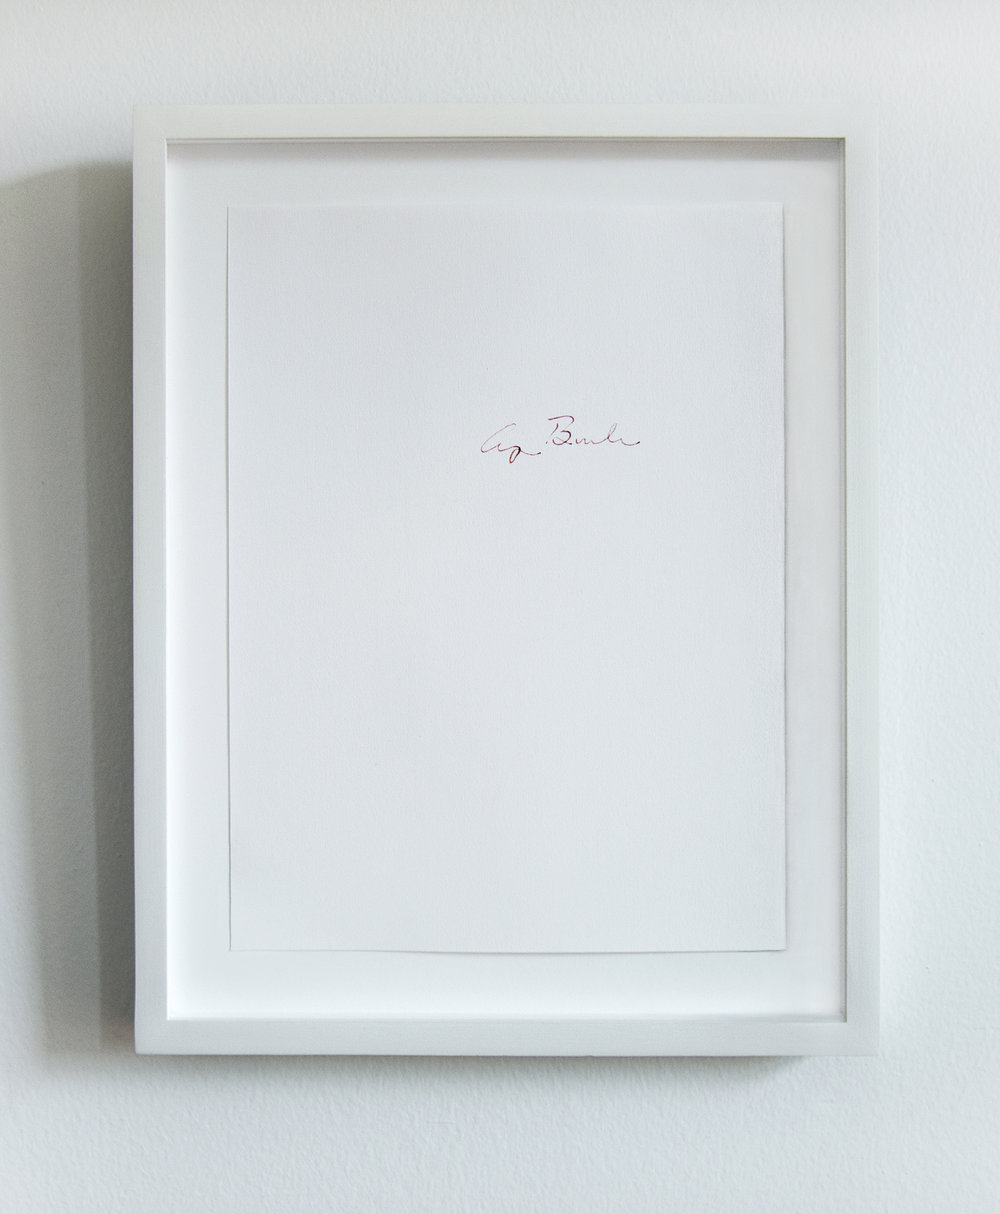 George H. W. Bush (1989-1993: Panama, Persian Gulf War, New World Order, etc.)   From the series  Everybody knows that they are guilty:  2013 - ongoing Human blood on paper 8.5 x 11 inches